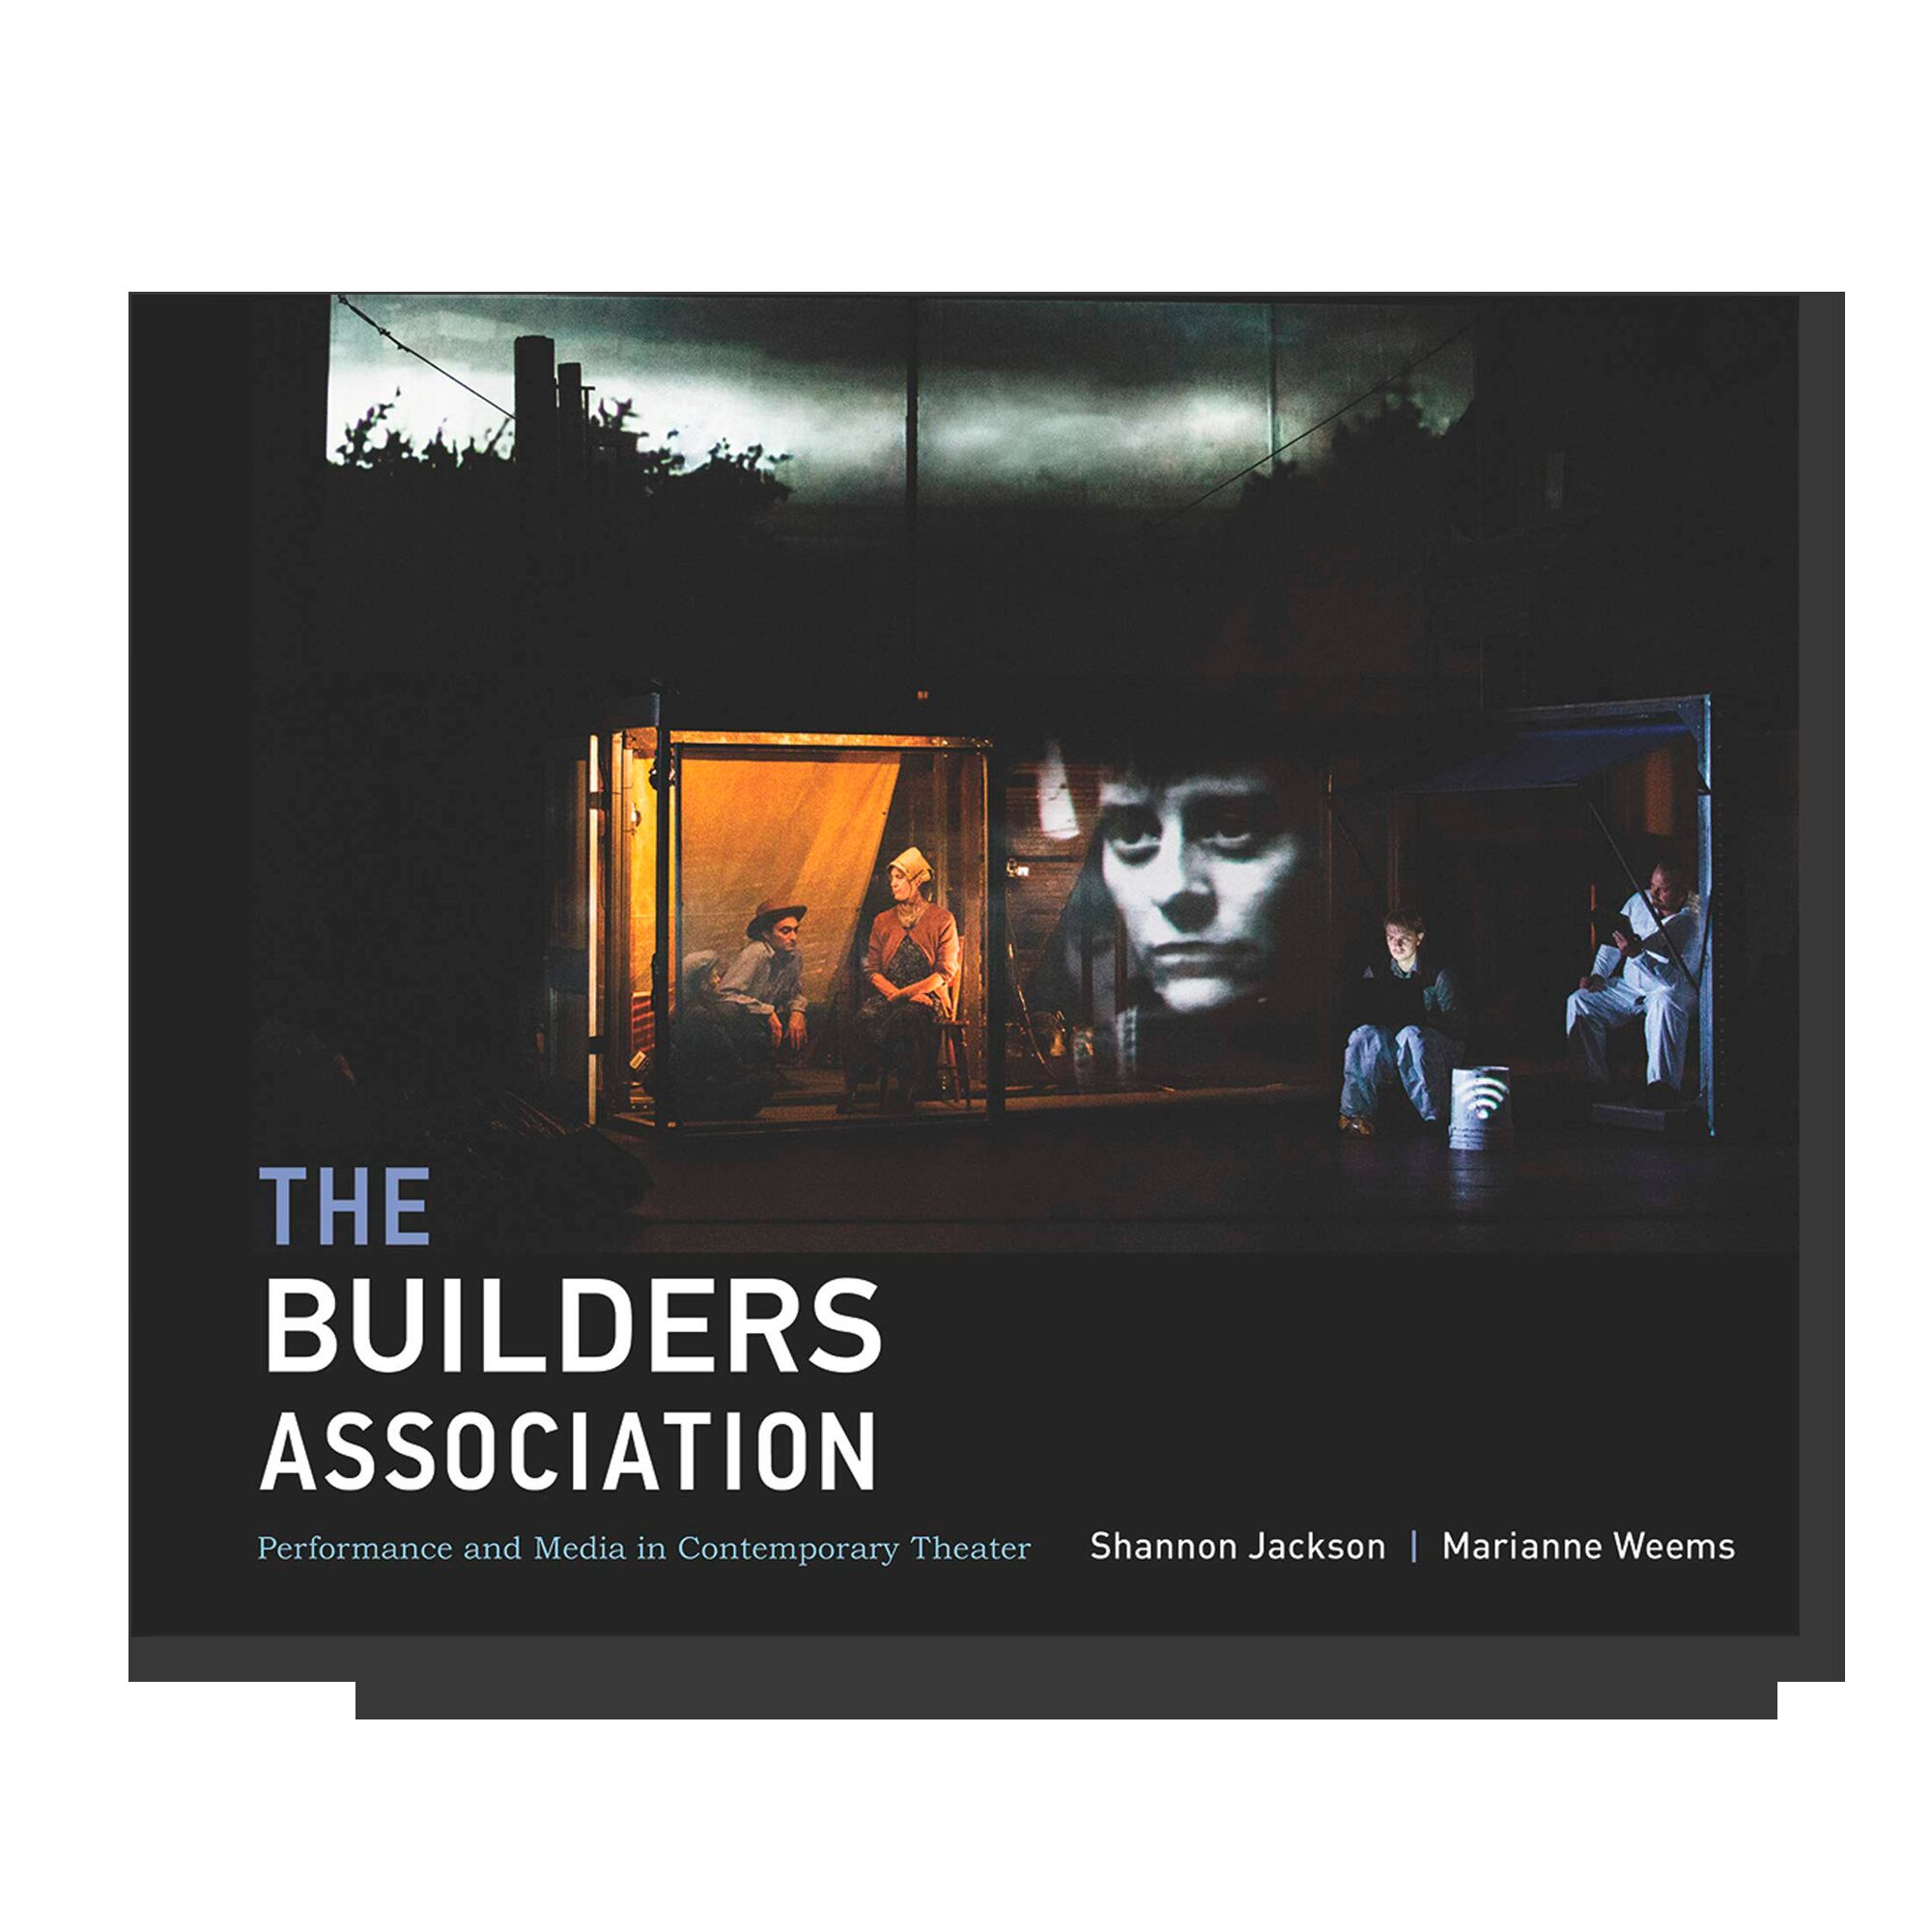 The Builders Association: Performance and Media in Contemporary Theater